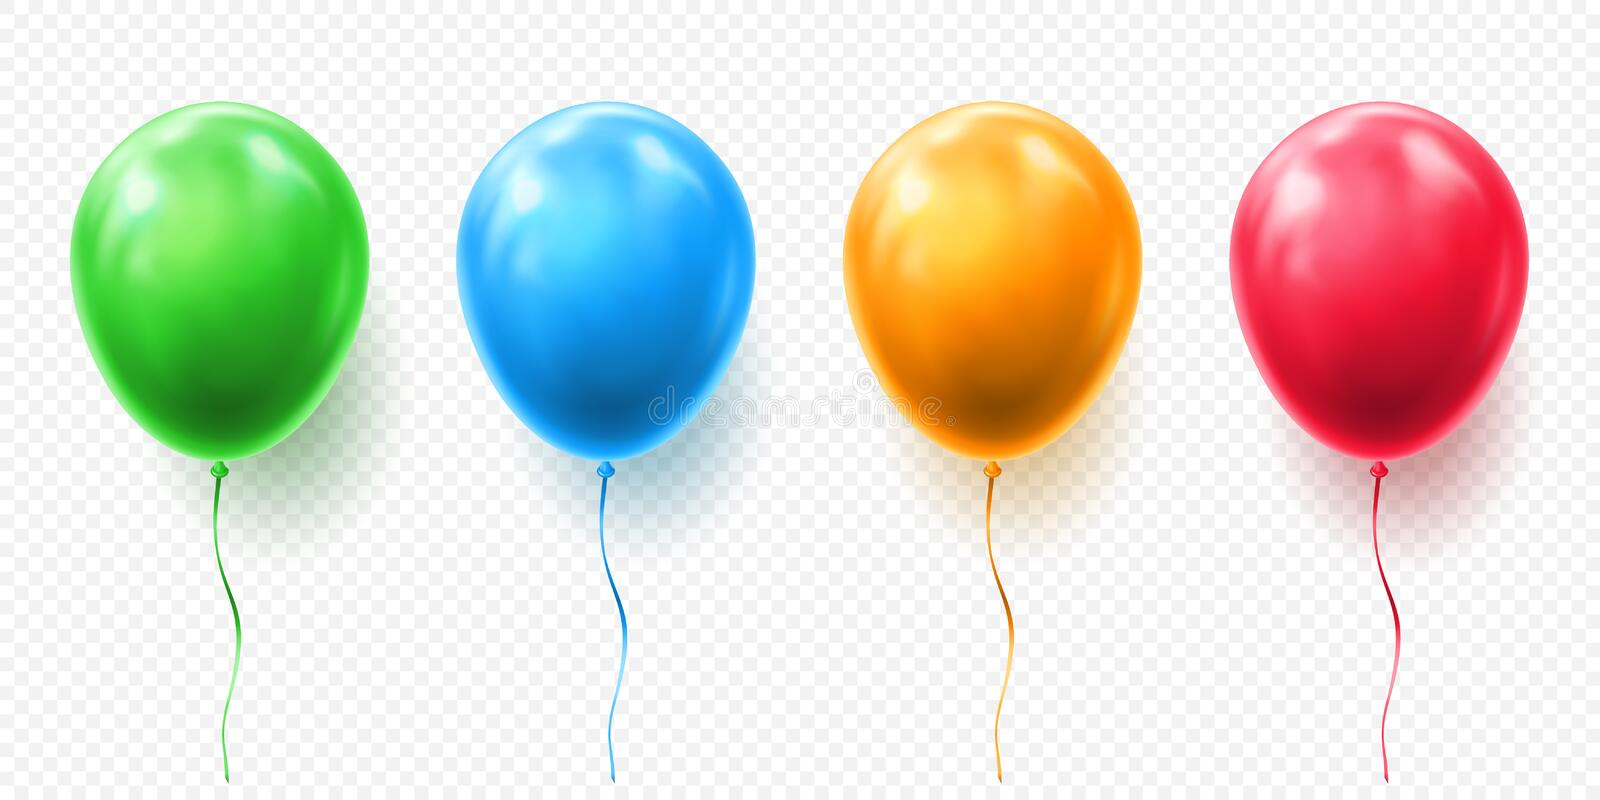 Realistic red, orange, green and blue balloon vector illustration on transparent background. Balloons for Birthday. Festive occasions, parties, weddings royalty free illustration